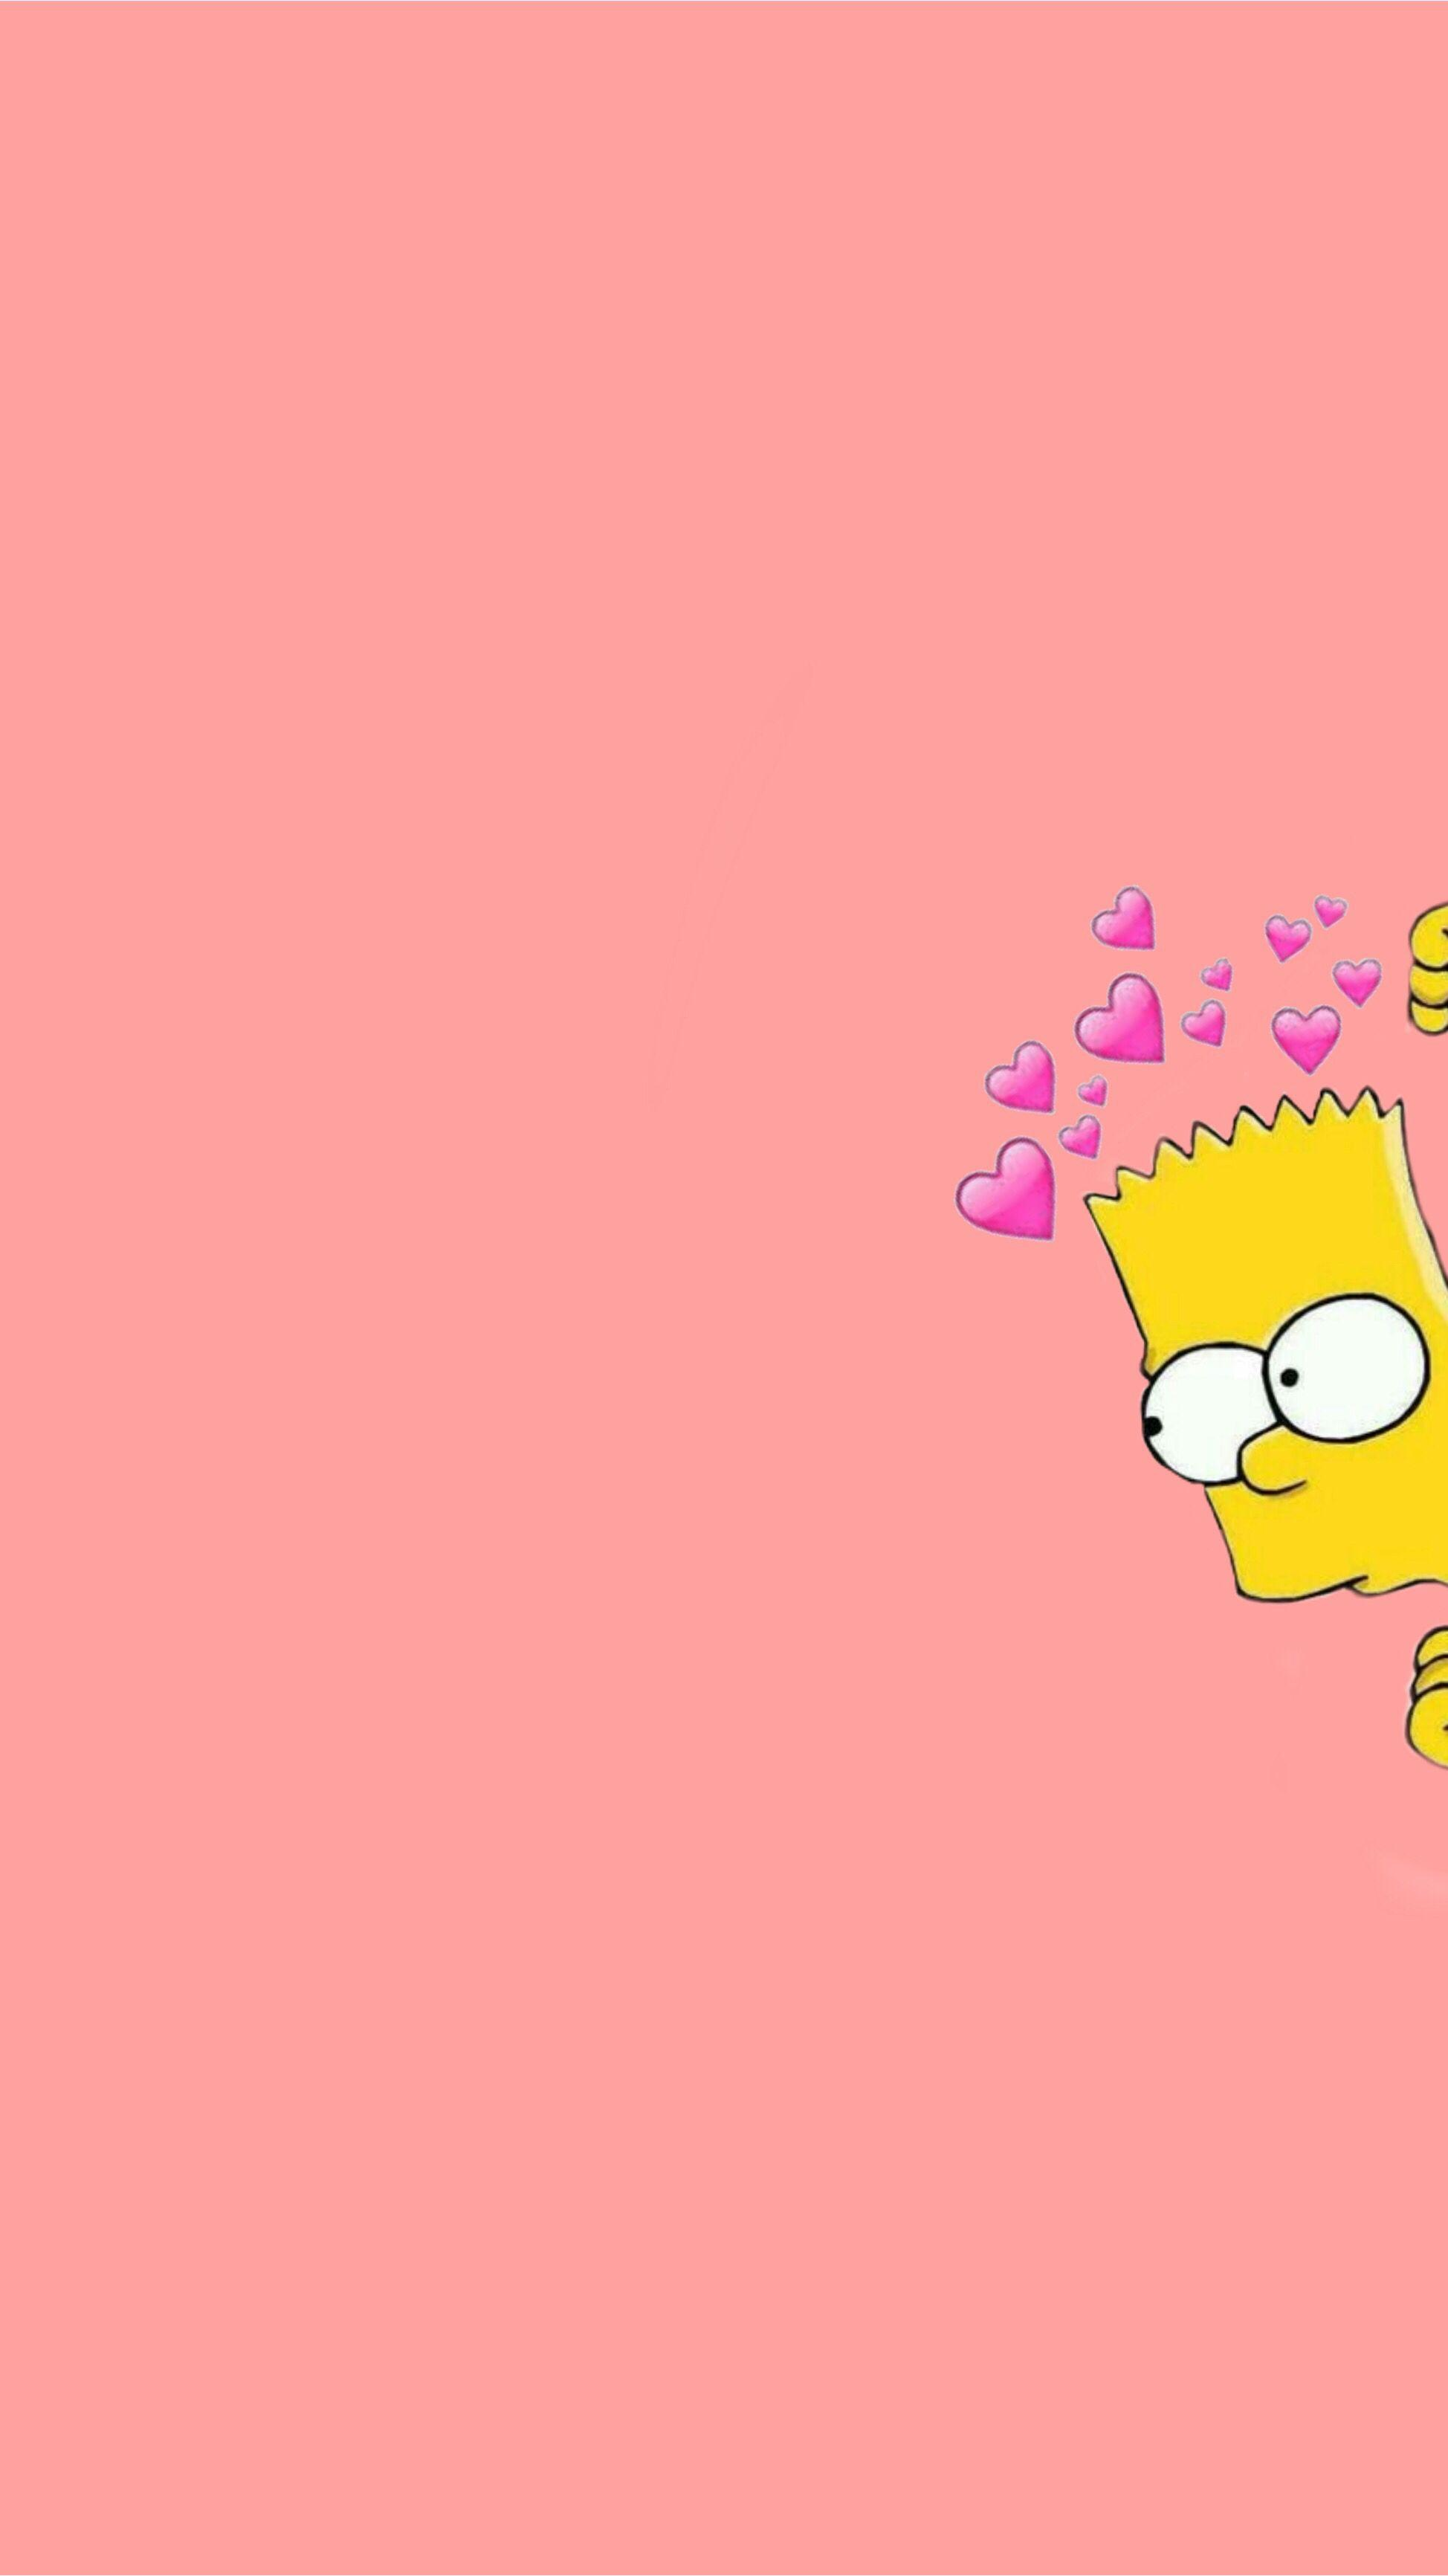 Aesthetic The Simpsons Wallpapers Wallpaper Cave